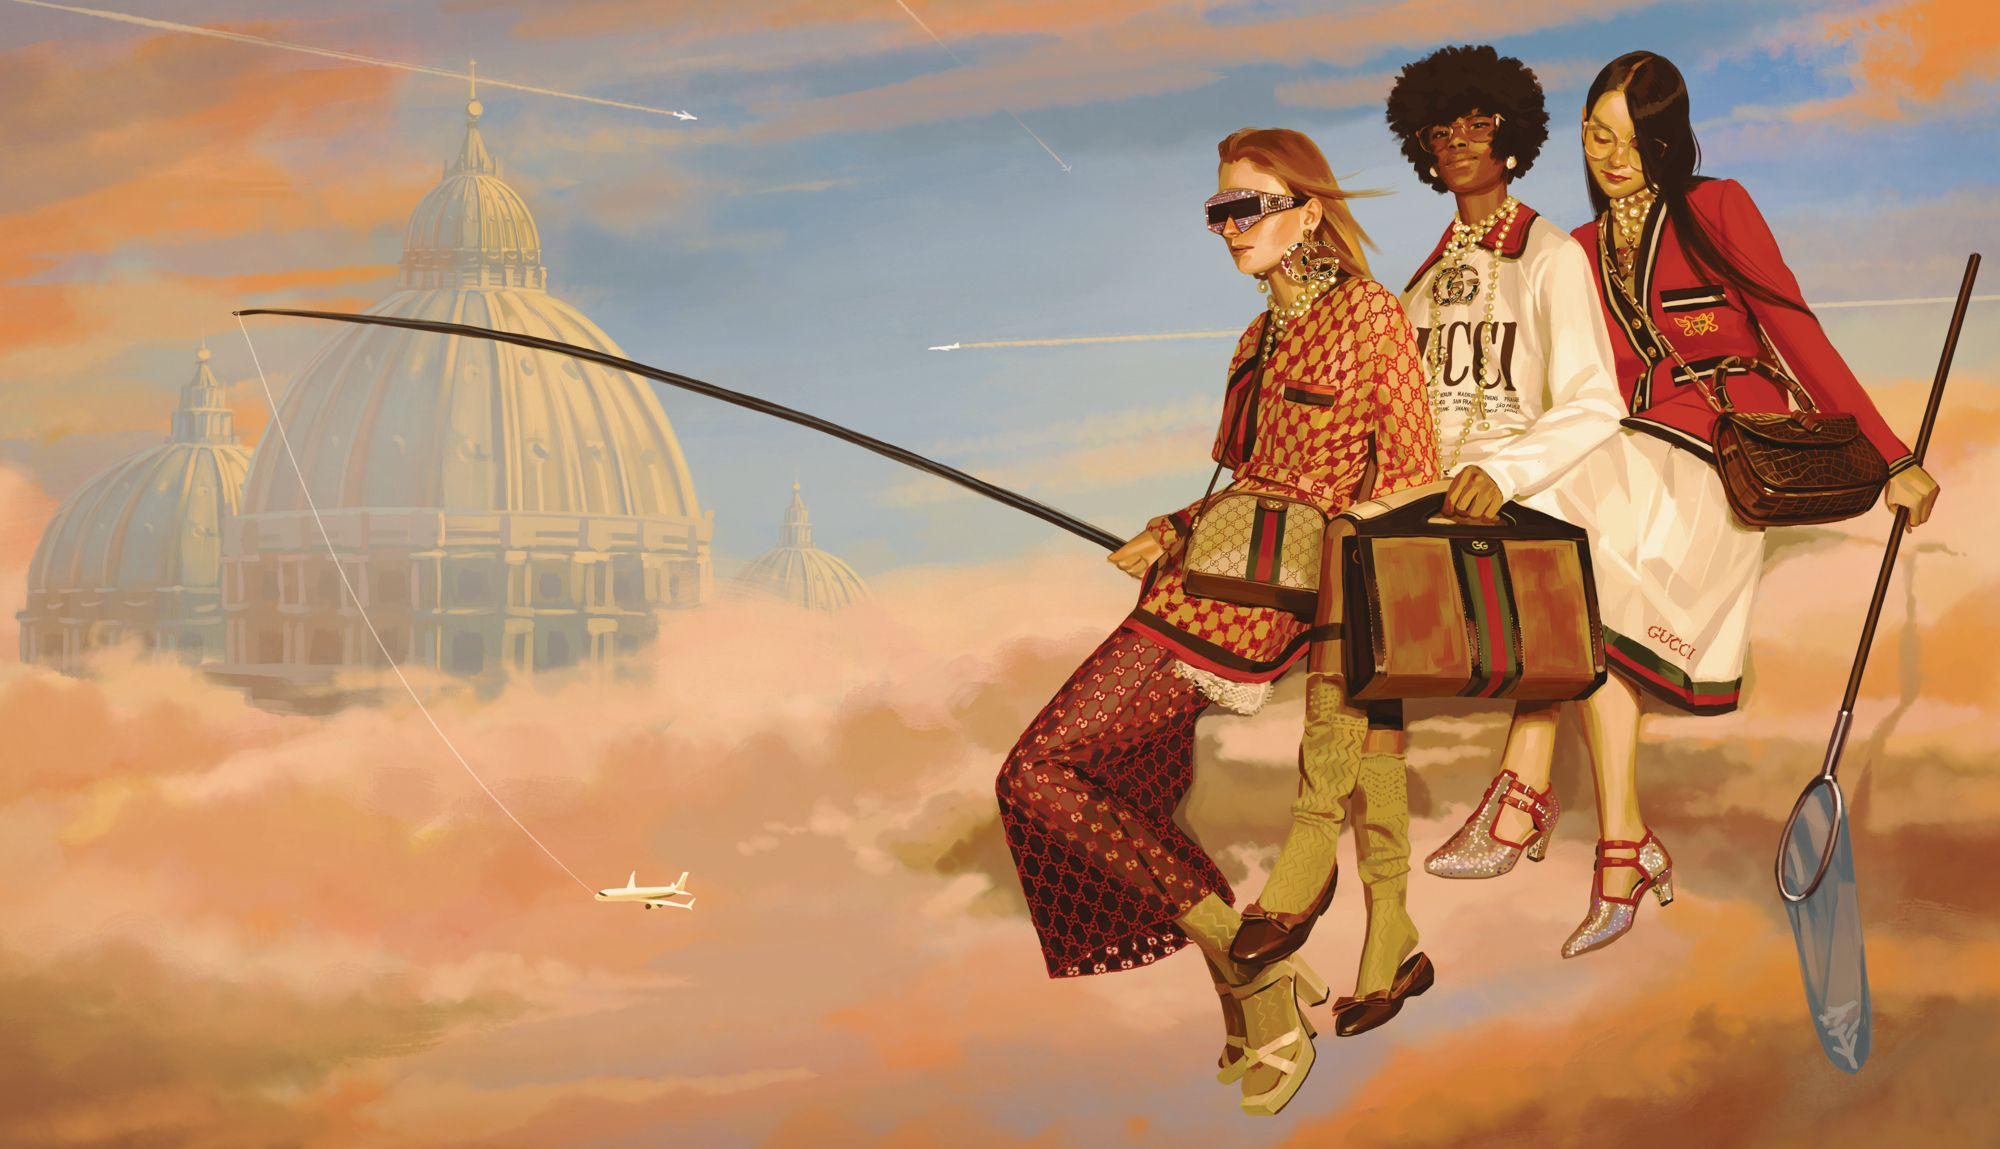 Painting by Ignasi Monreal for Gucci's Utopian Fantasy campaign